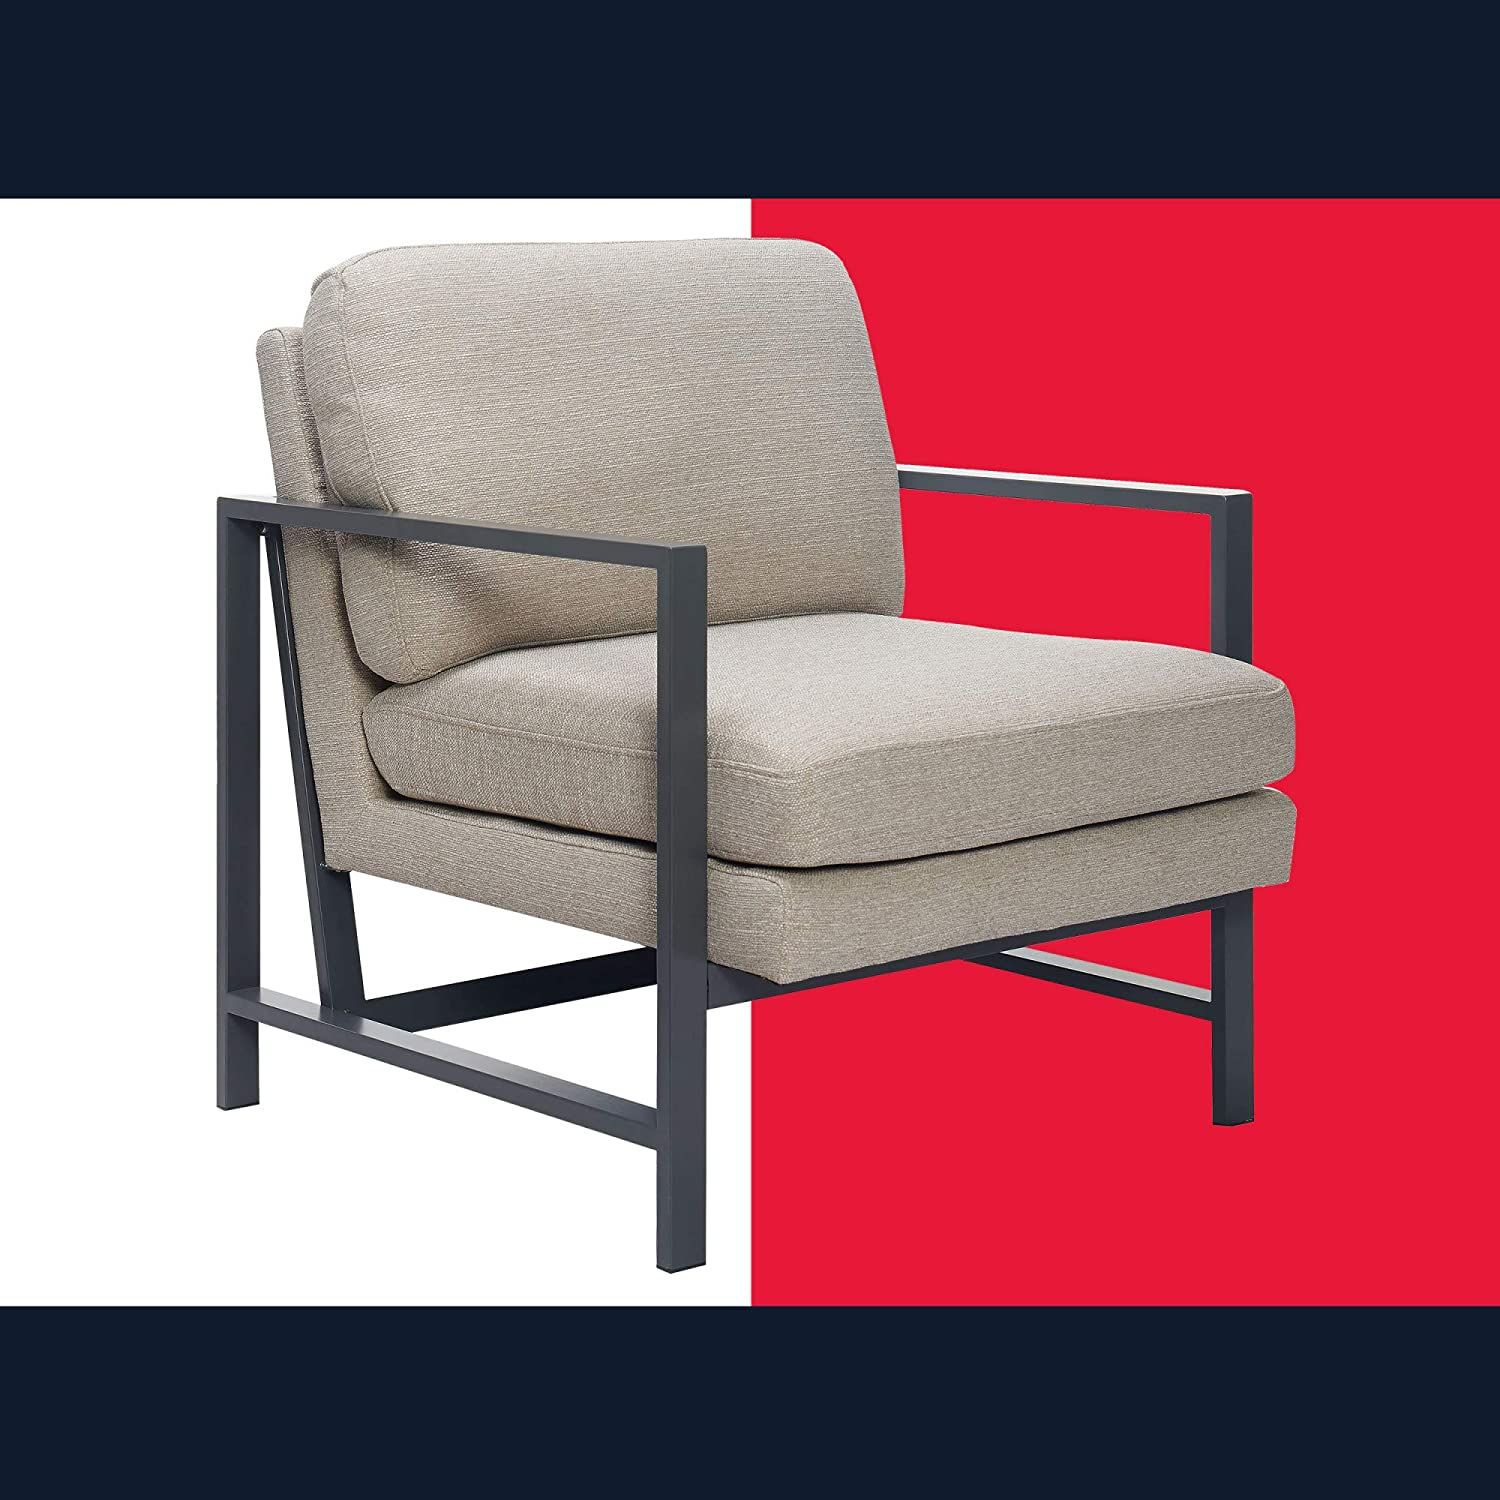 Tommy Hilfiger Russell Mid-Century Accent Chair, Metal Frame, Modern Upholstered Style, Off-White